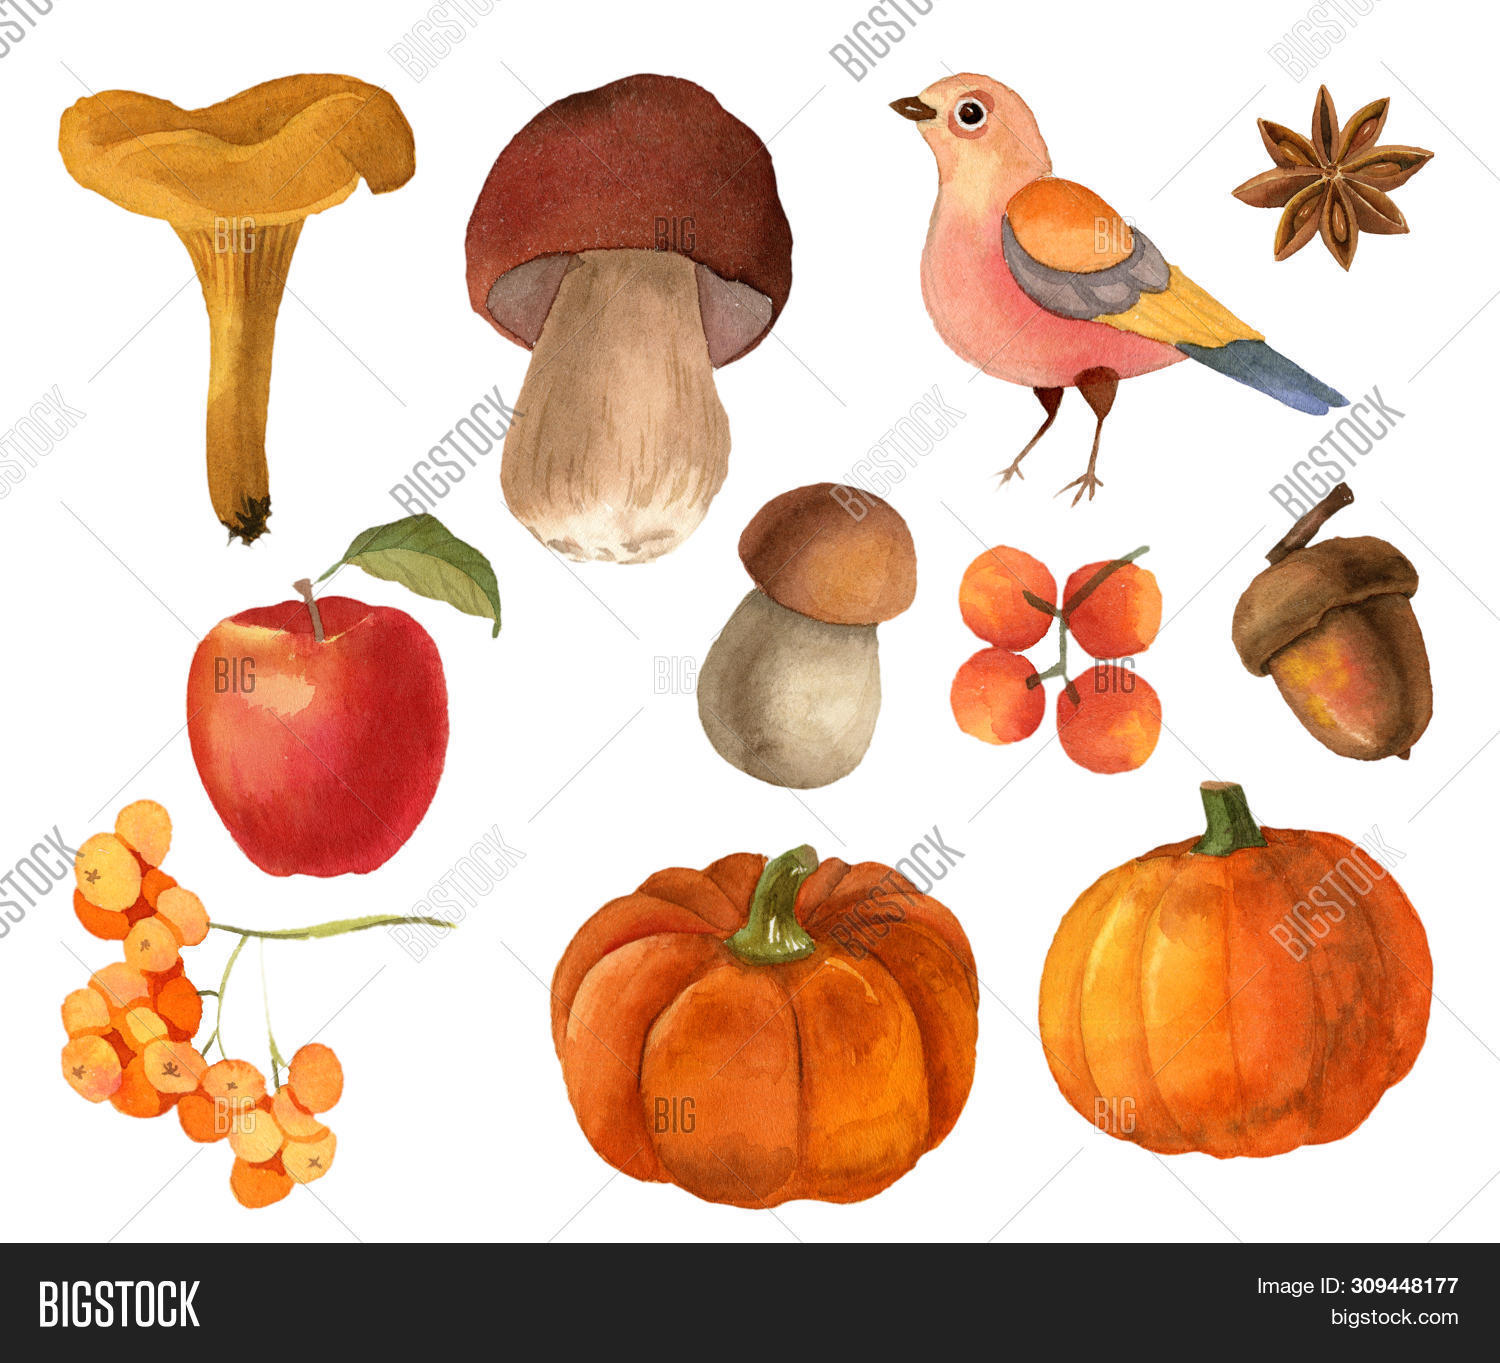 acorn.,artwork,autumn,banner,berries,bird,botanical,bouquet,bud,card,clipart,colorful,composition,decor,decoration,decorative,design,drawing,elements,fall,festival,festive,garden,halloween,harvest,illustration,isolated,leaf,leaves,mushrooms,orange,paint,plants,pumpkin,season,seasonal,set,thanksgiving,watercolor,yellow